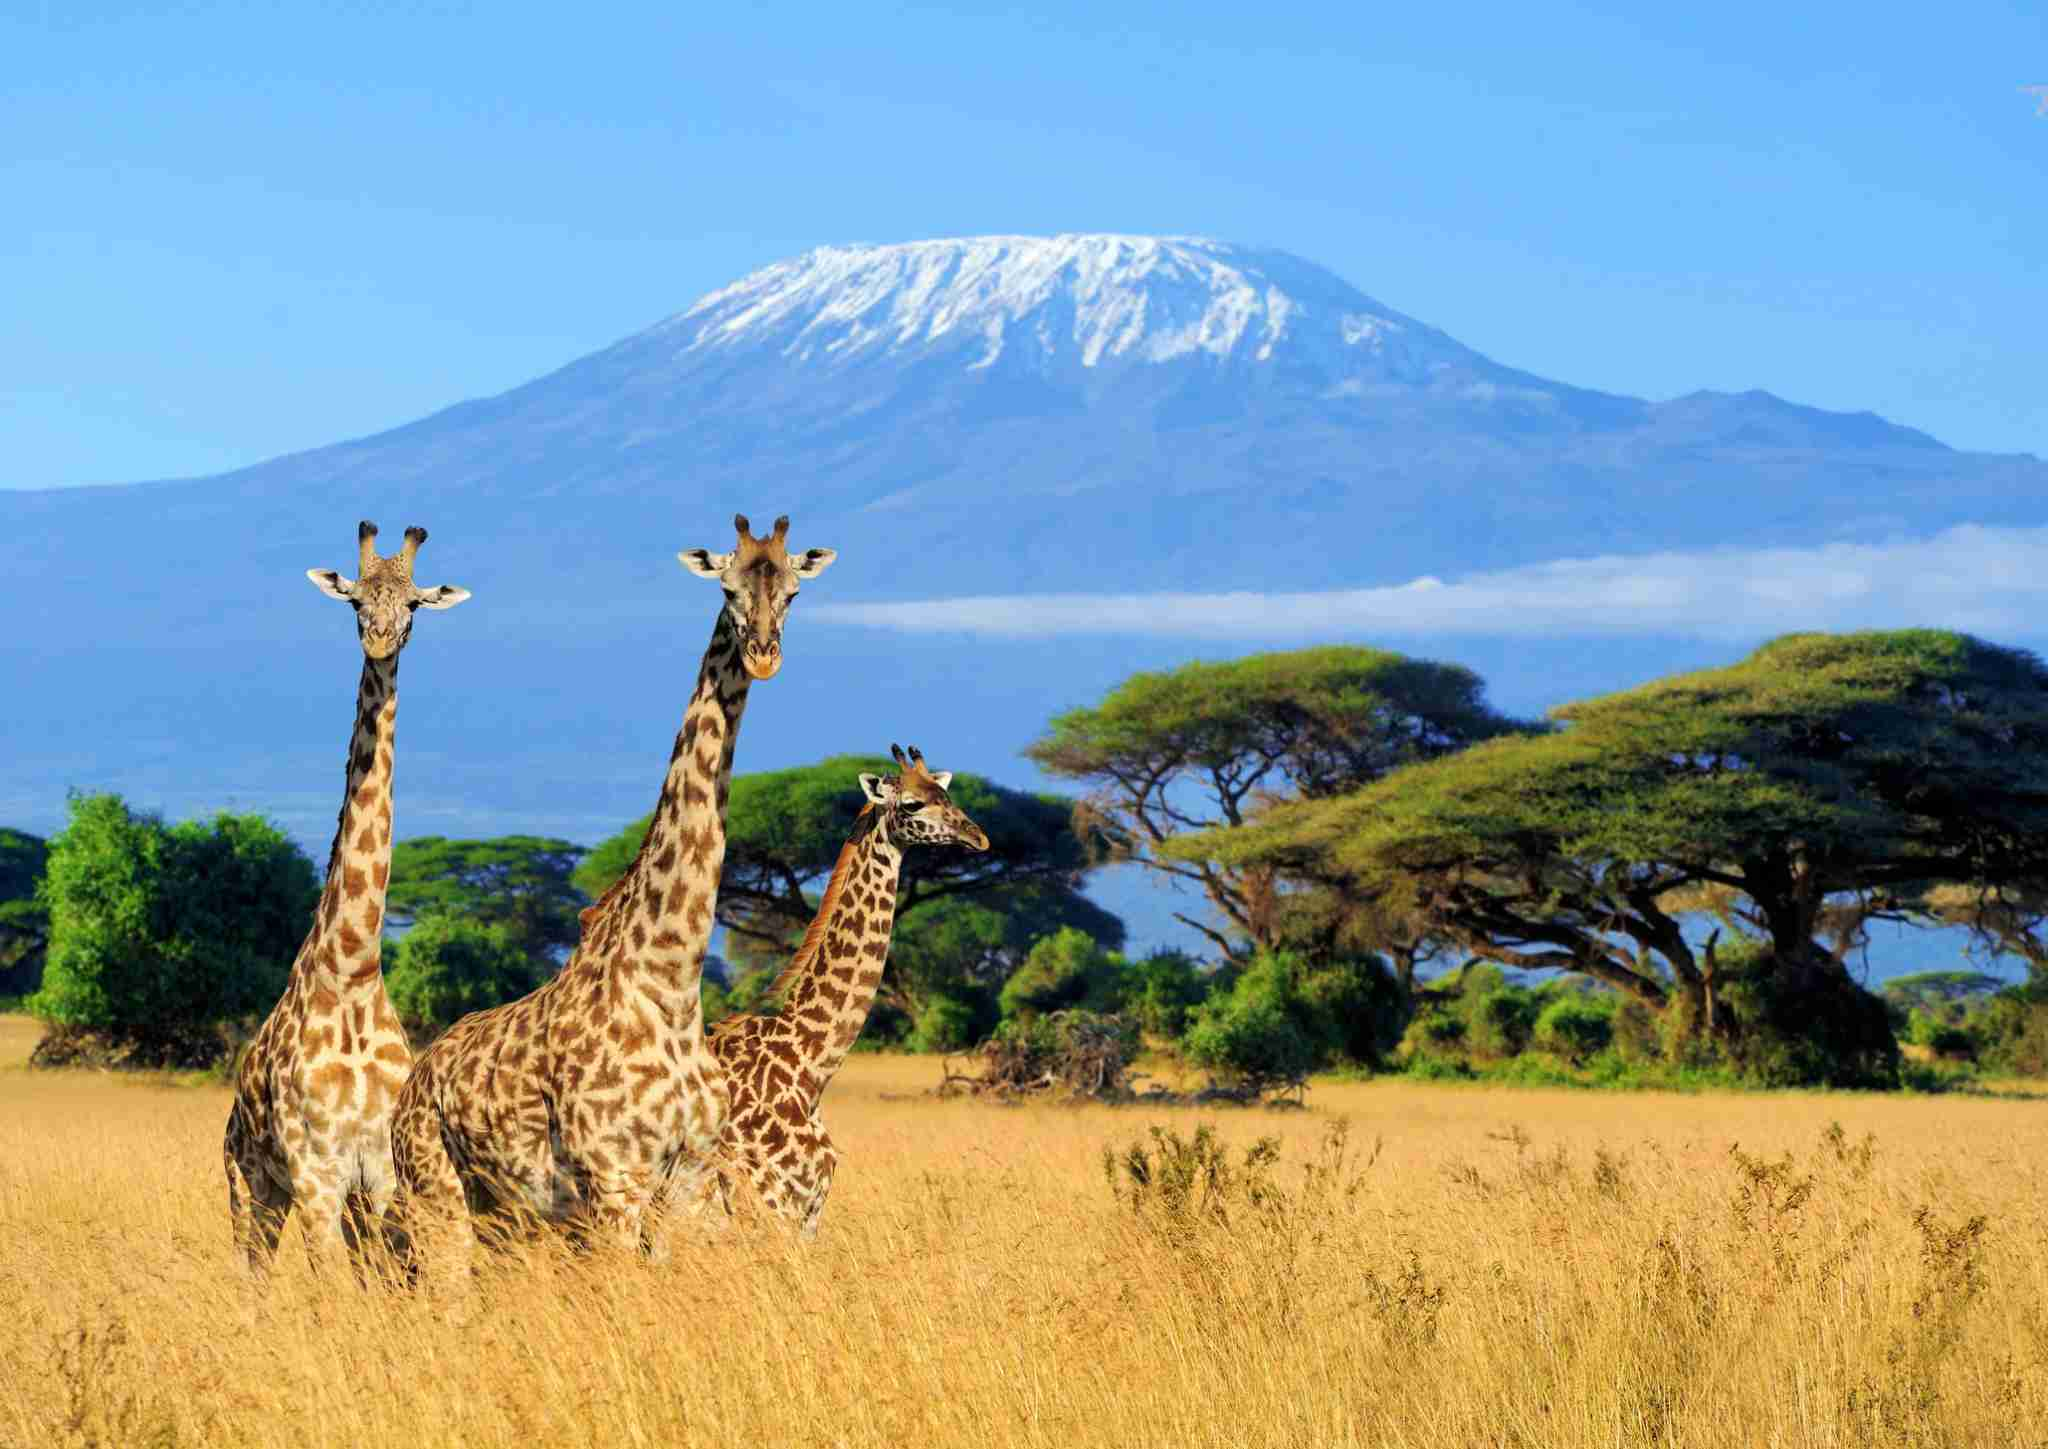 Use your points and miles to take the ultimate trip to Mt. Kilimanjaro. (Photo by Byrdyak / Getty Images)